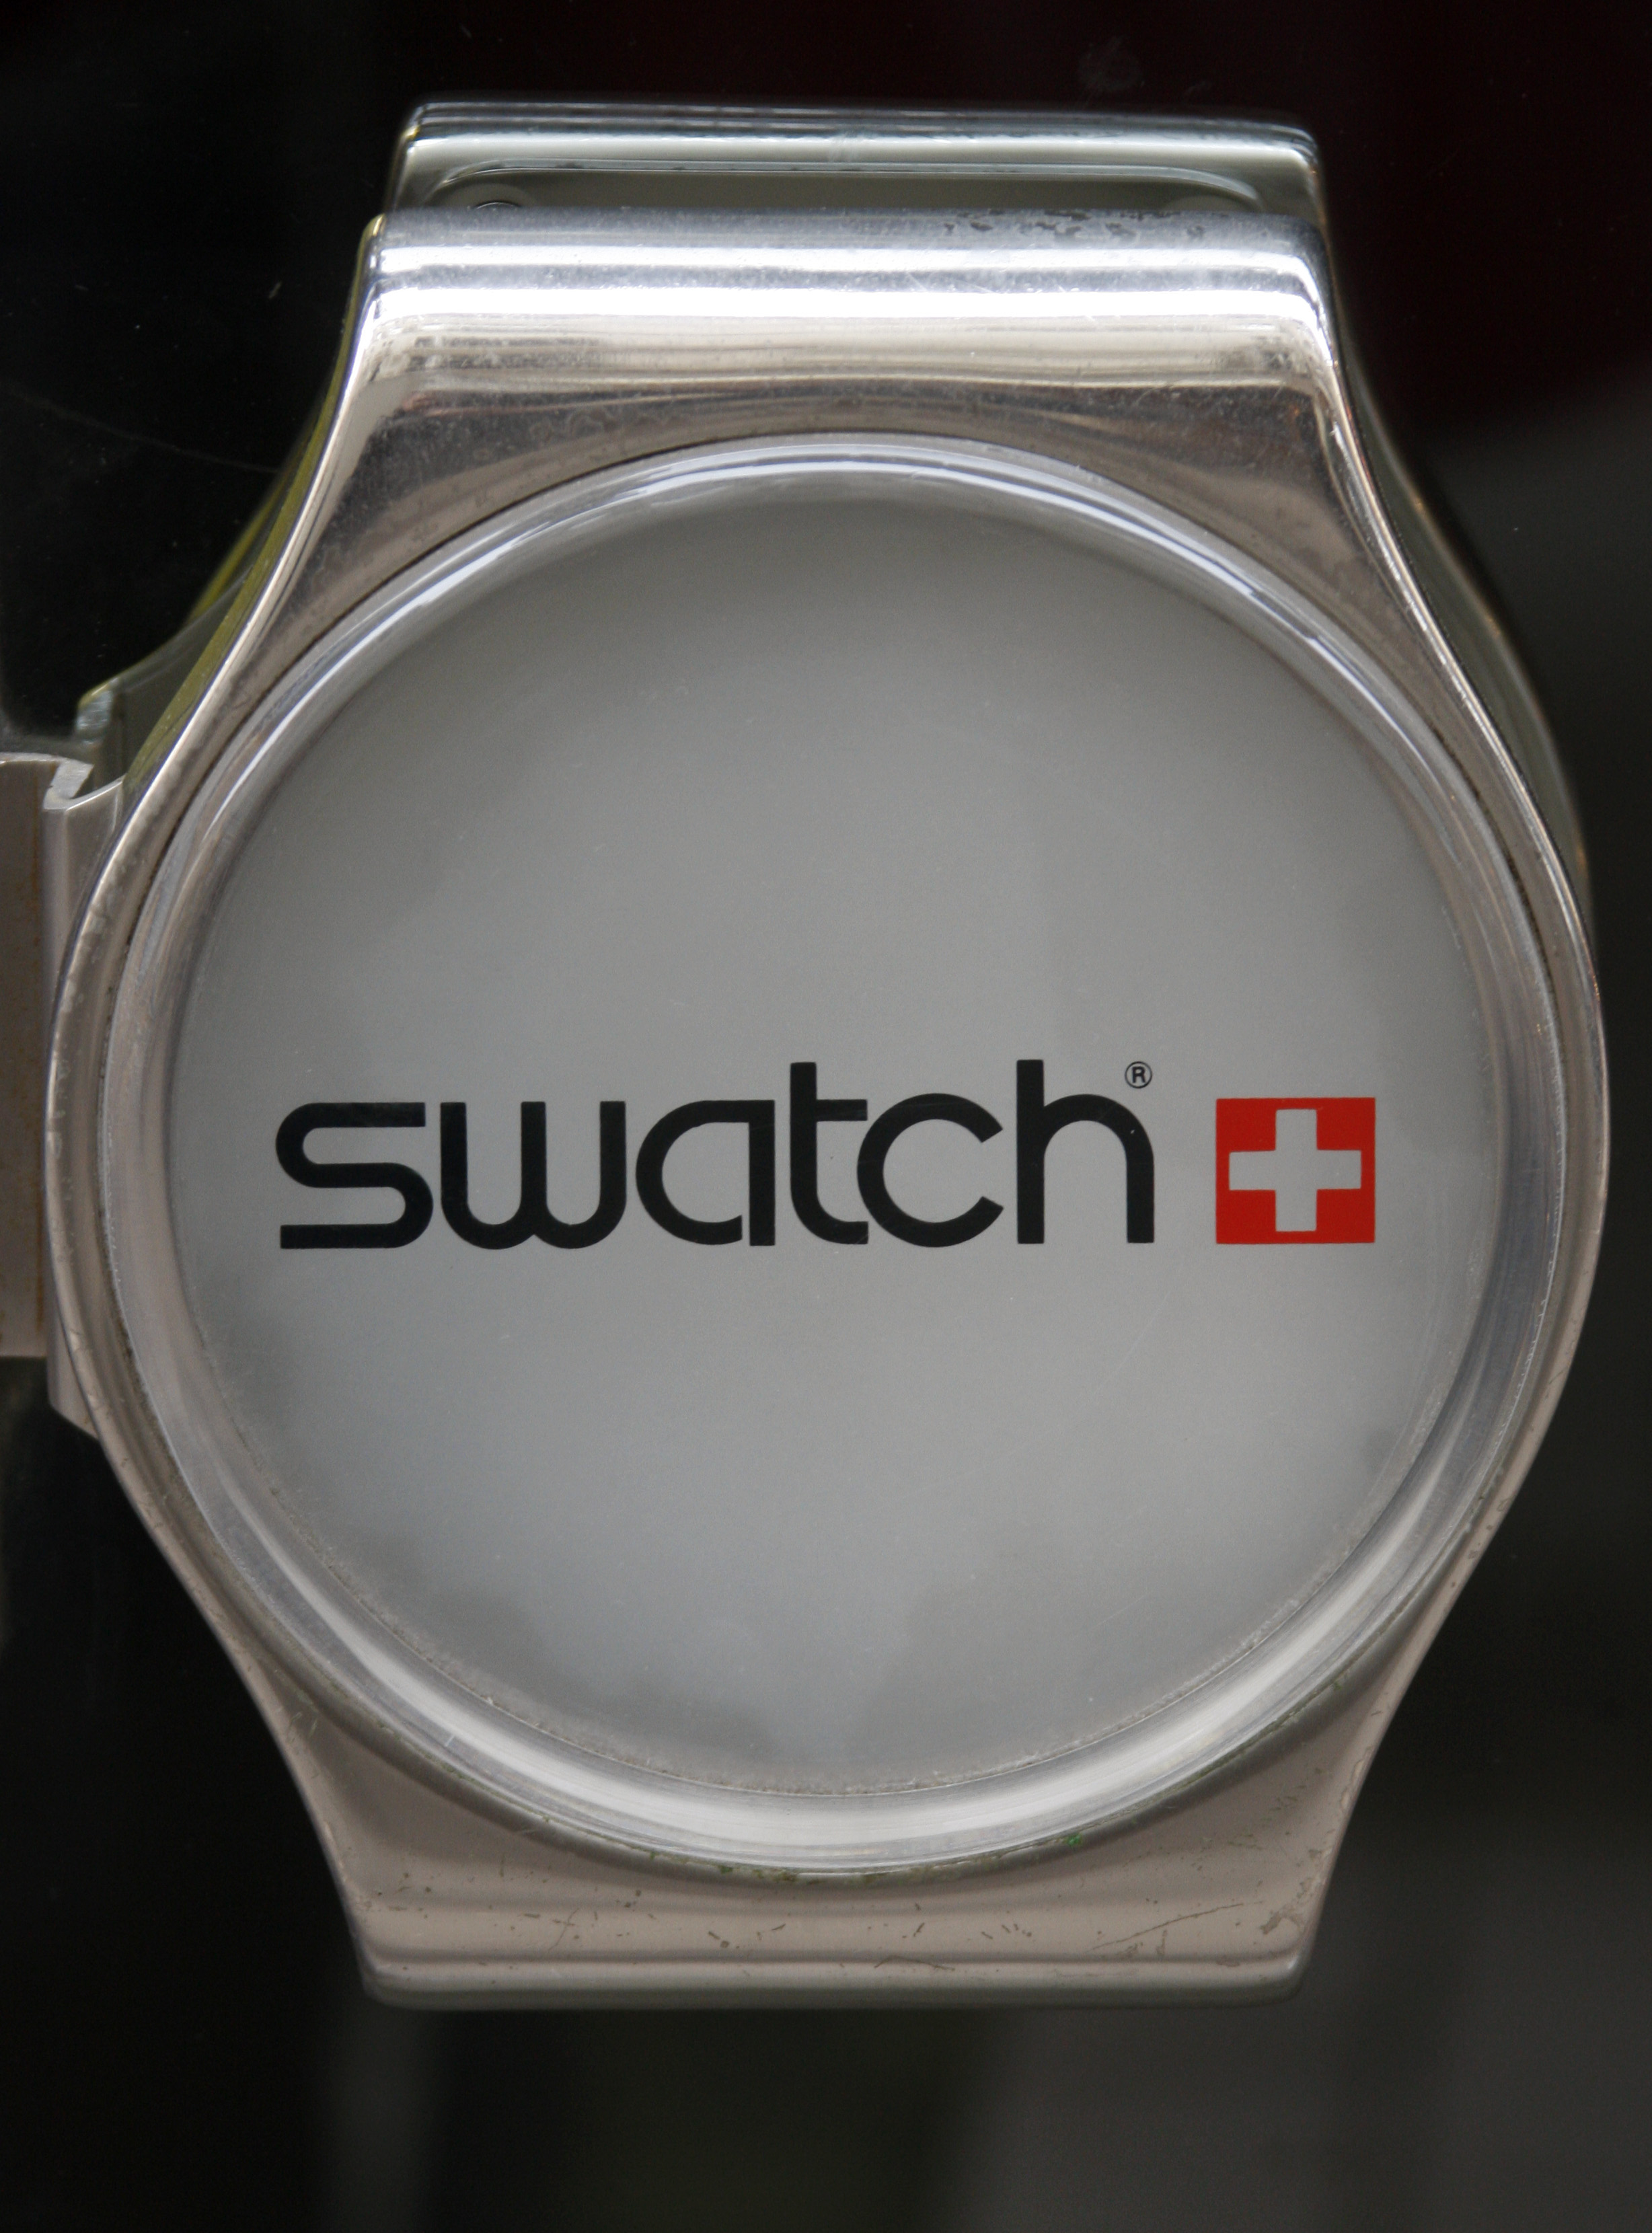 The logo of Swiss watchmaker Swatch is seen on the door of a Swatch watches shop in Strasbourg on March 12, 2009.